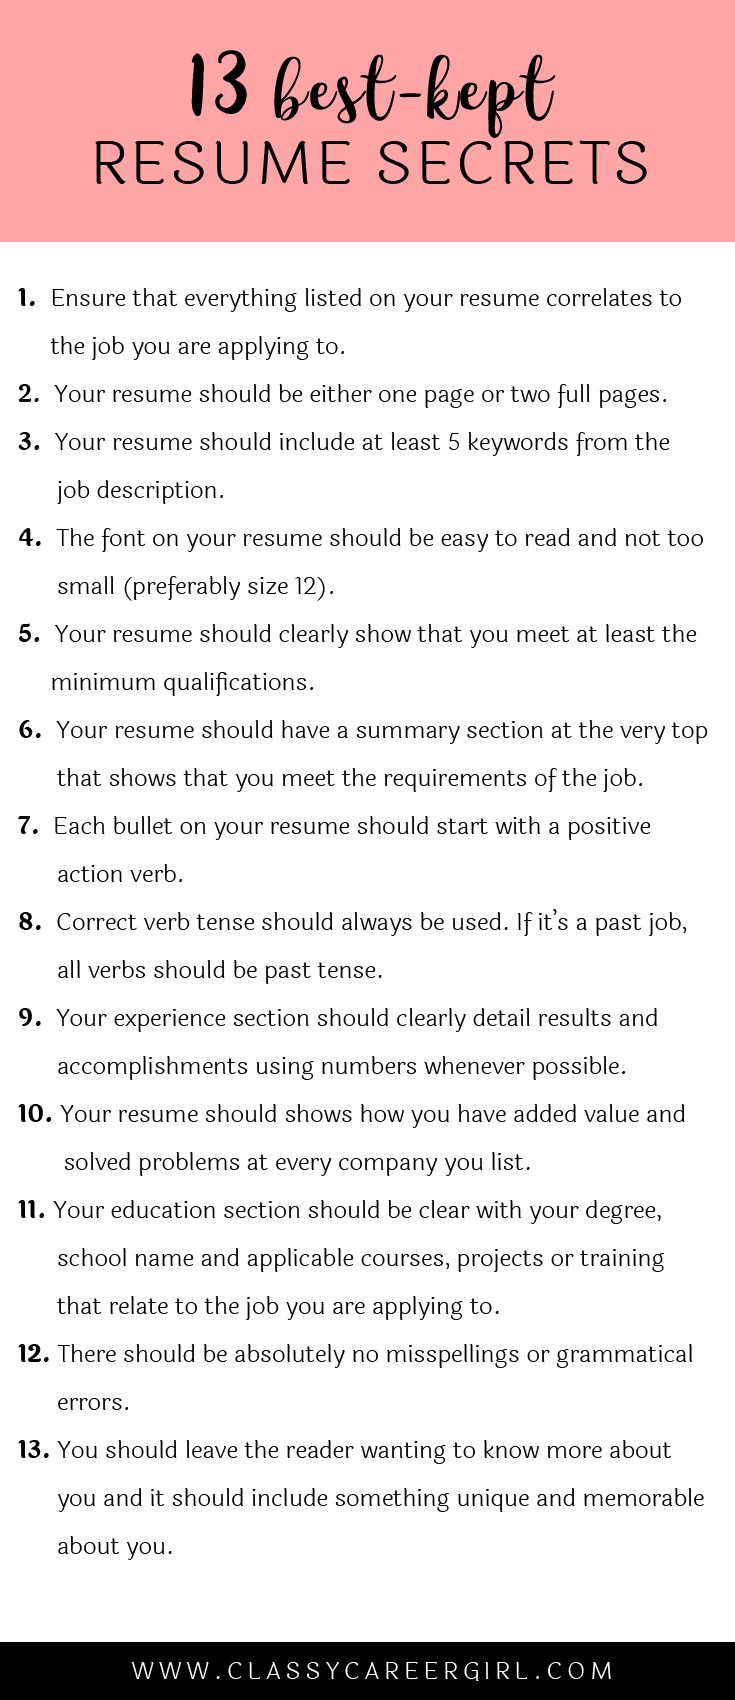 Opposenewapstandardsus  Inspiring  Ideas About Resume On Pinterest  Cv Format Resume  With Marvelous Some Hiring Managers Will Toss Your Resume Out If You Dont Know These  With Breathtaking Art Resumes Also Resume Restaurant Server In Addition Infrastructure Project Manager Resume And Web Development Resume As Well As Bartender Sample Resume Additionally Ses Resume From Pinterestcom With Opposenewapstandardsus  Marvelous  Ideas About Resume On Pinterest  Cv Format Resume  With Breathtaking Some Hiring Managers Will Toss Your Resume Out If You Dont Know These  And Inspiring Art Resumes Also Resume Restaurant Server In Addition Infrastructure Project Manager Resume From Pinterestcom